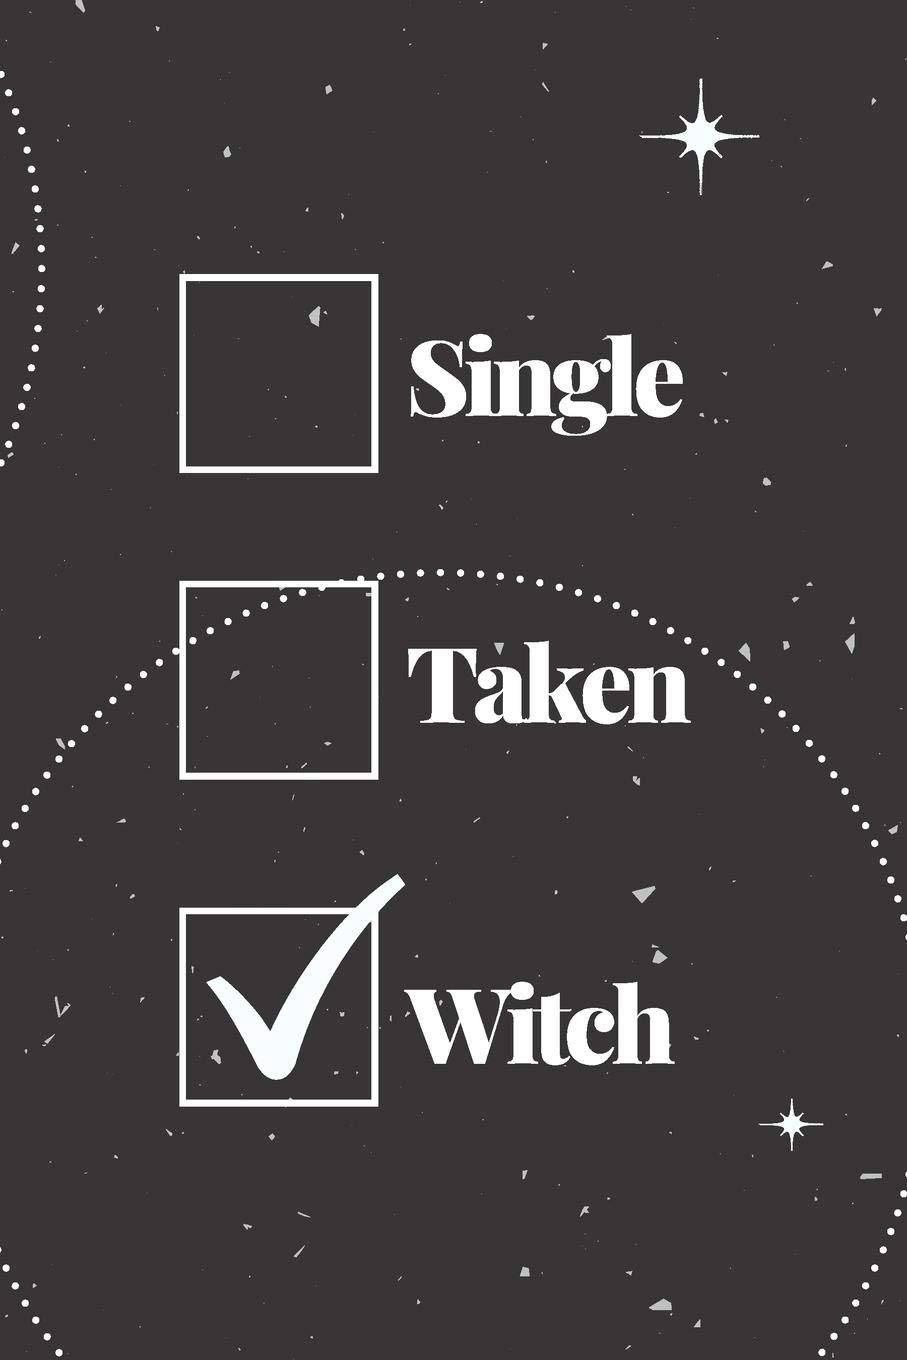 Witches dating dating love marriage